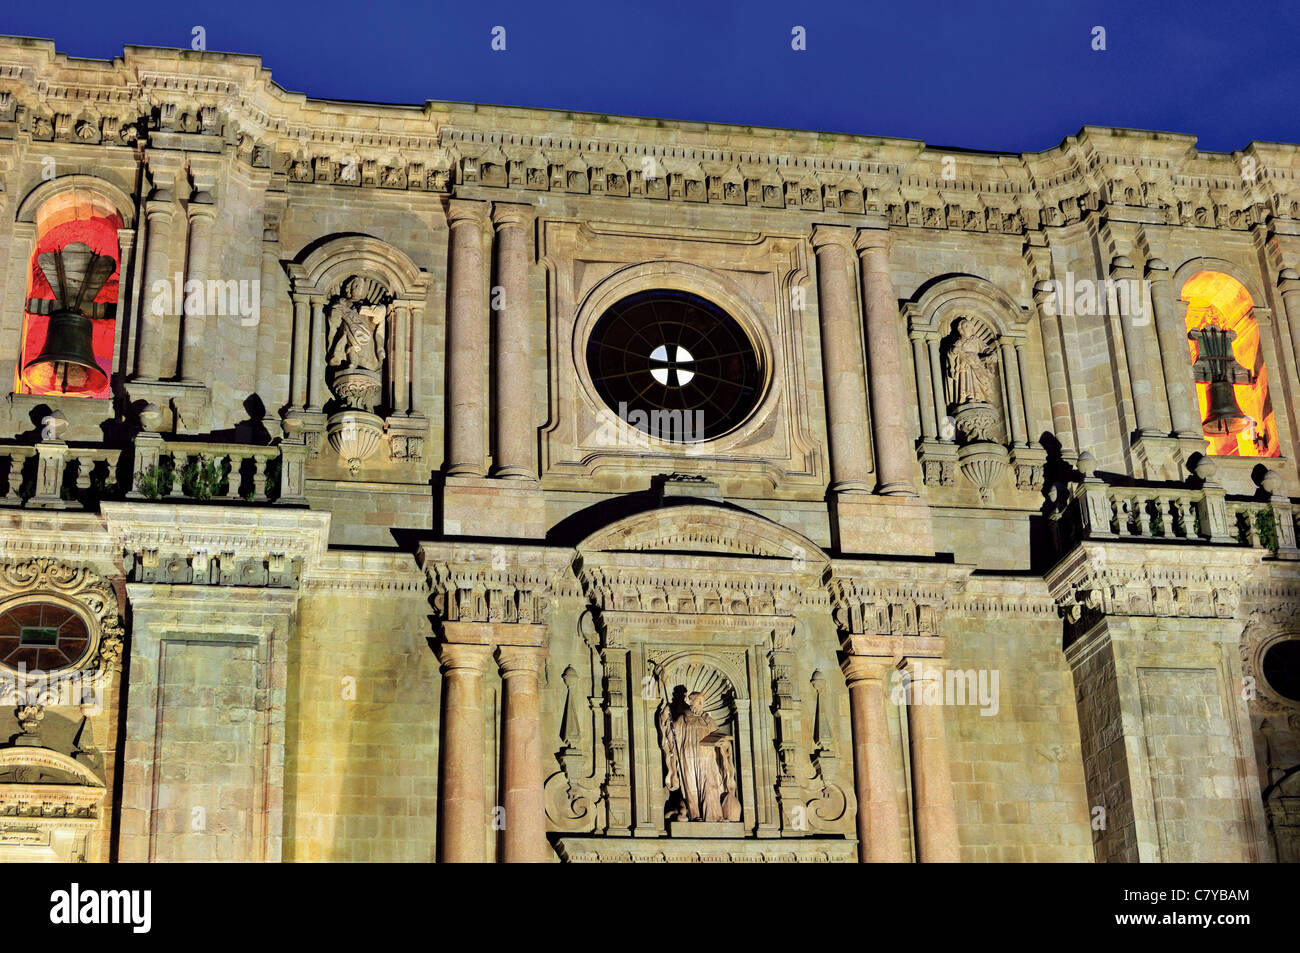 Spain, St. James Way: Main facade of the Monastery of Samos by night - Stock Image